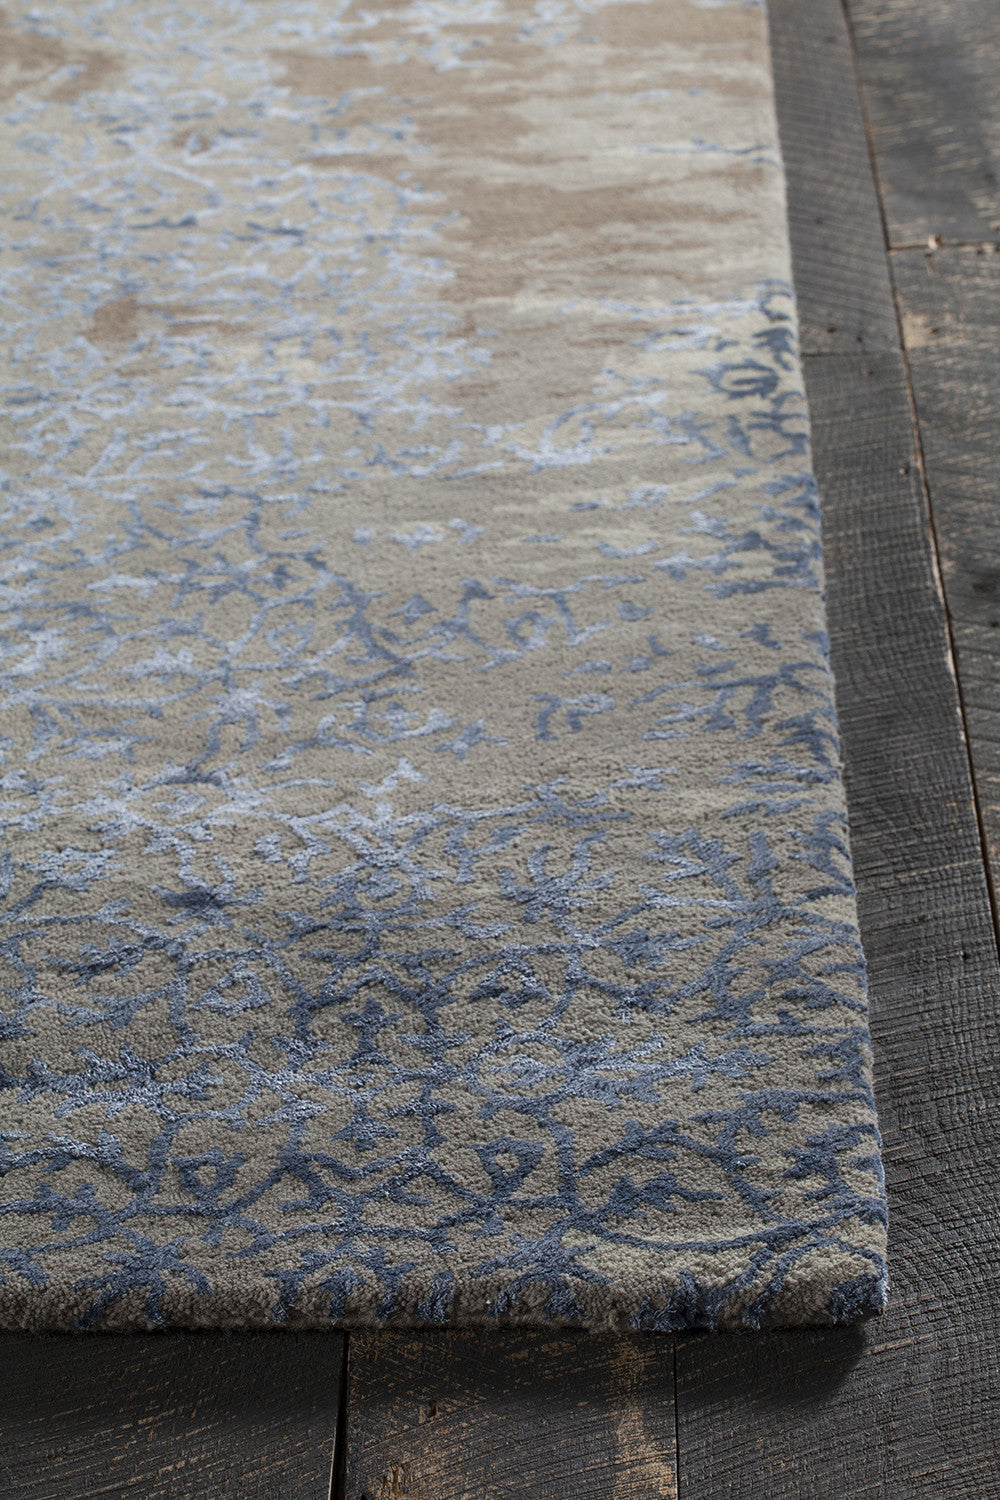 Rupec Collection Hand Tufted Area Rug In Grey, Blue, U0026 Brown Design By  Chandra Rugs